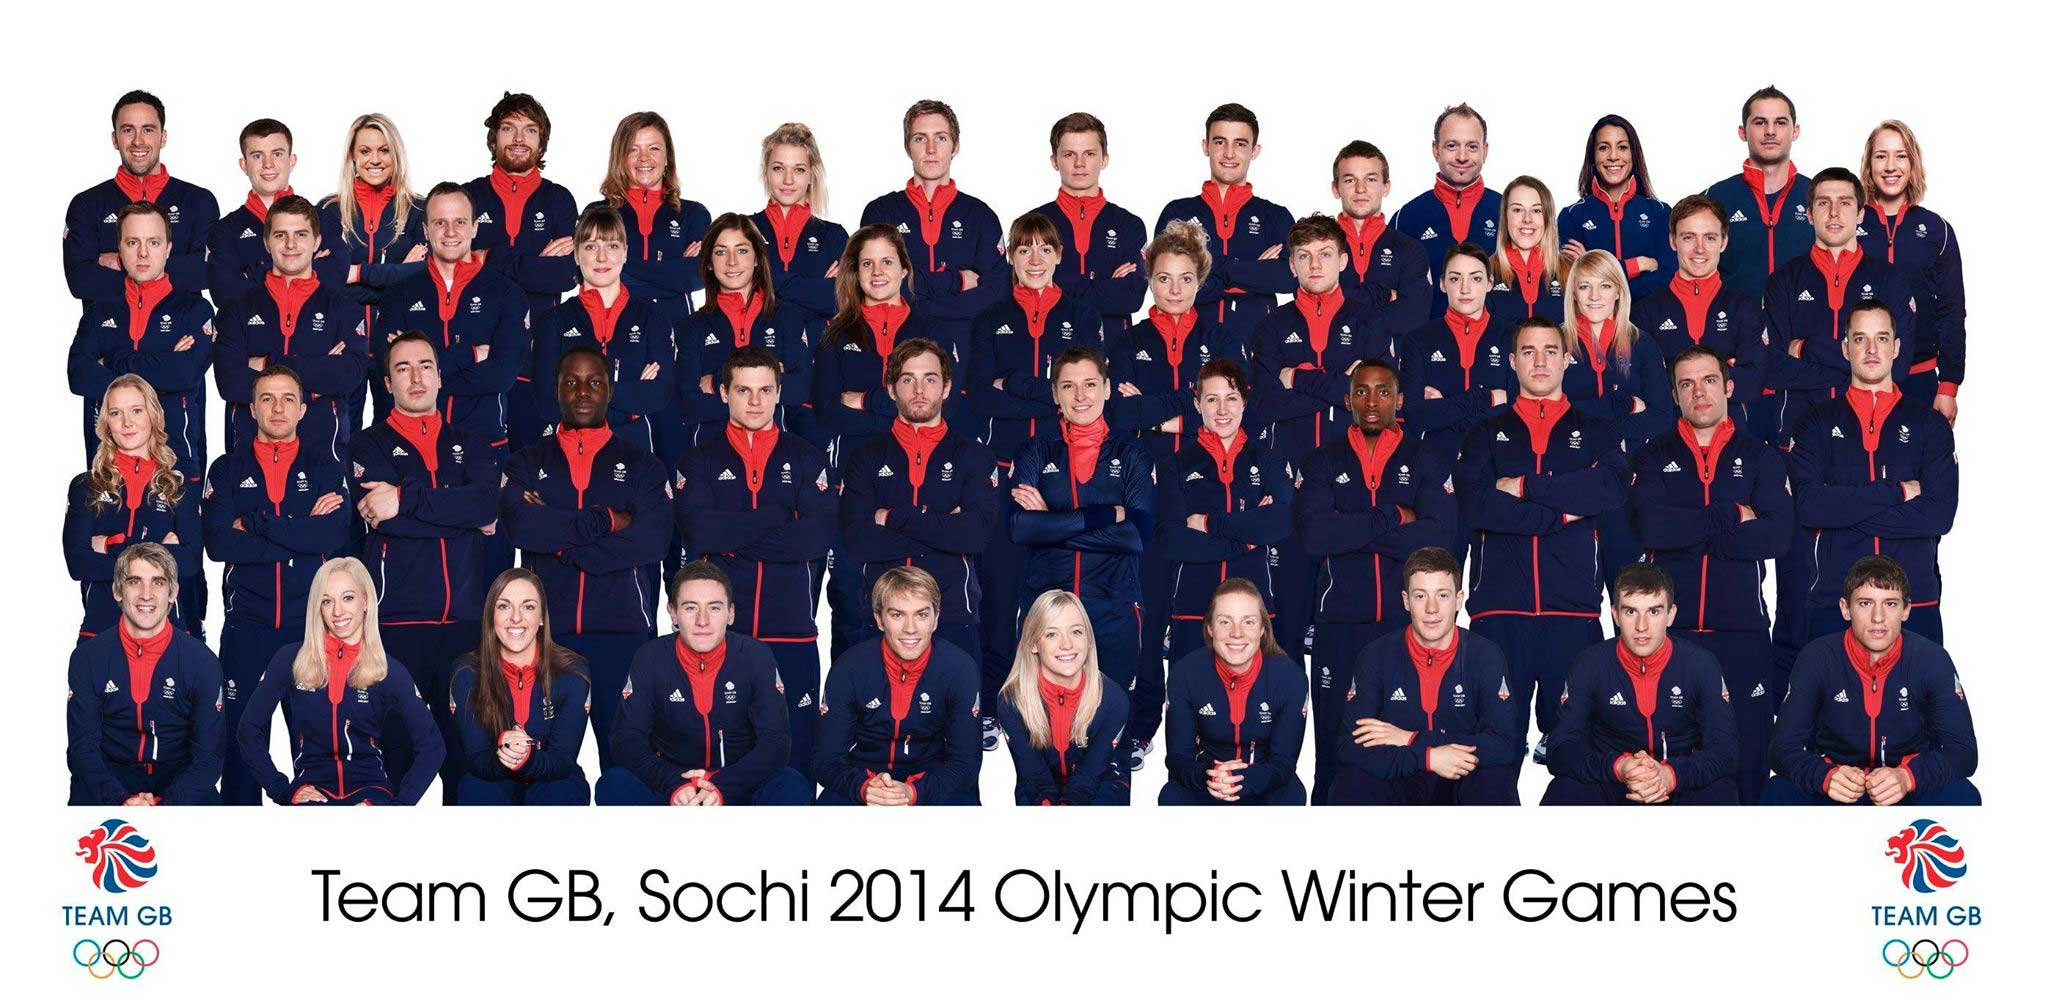 Team GB Sochi 2014 Olympic Winter Games